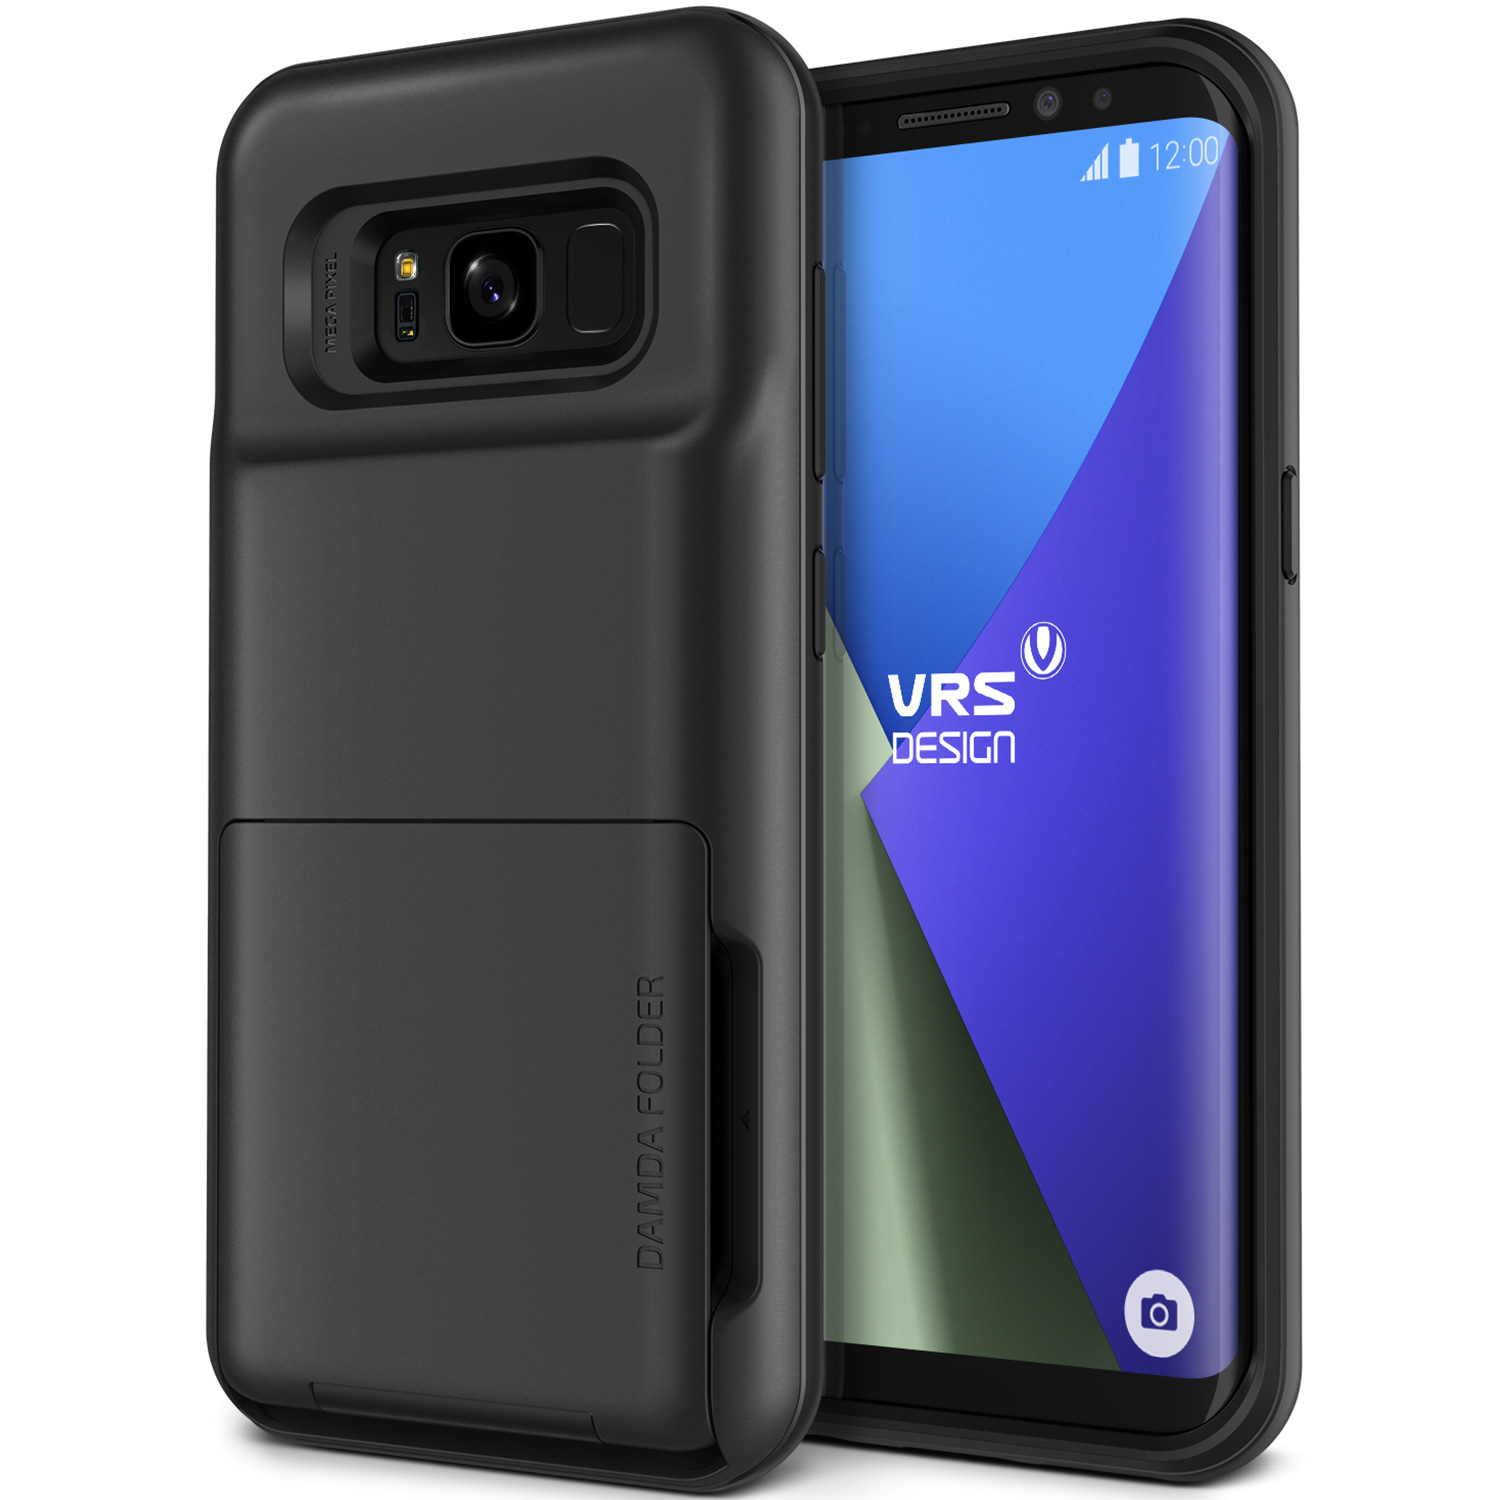 Samsung Galaxy S8 Case Cover | Protective Wallet with Card Slots | VRS Design Damda Folder for Samsung Galaxy S8